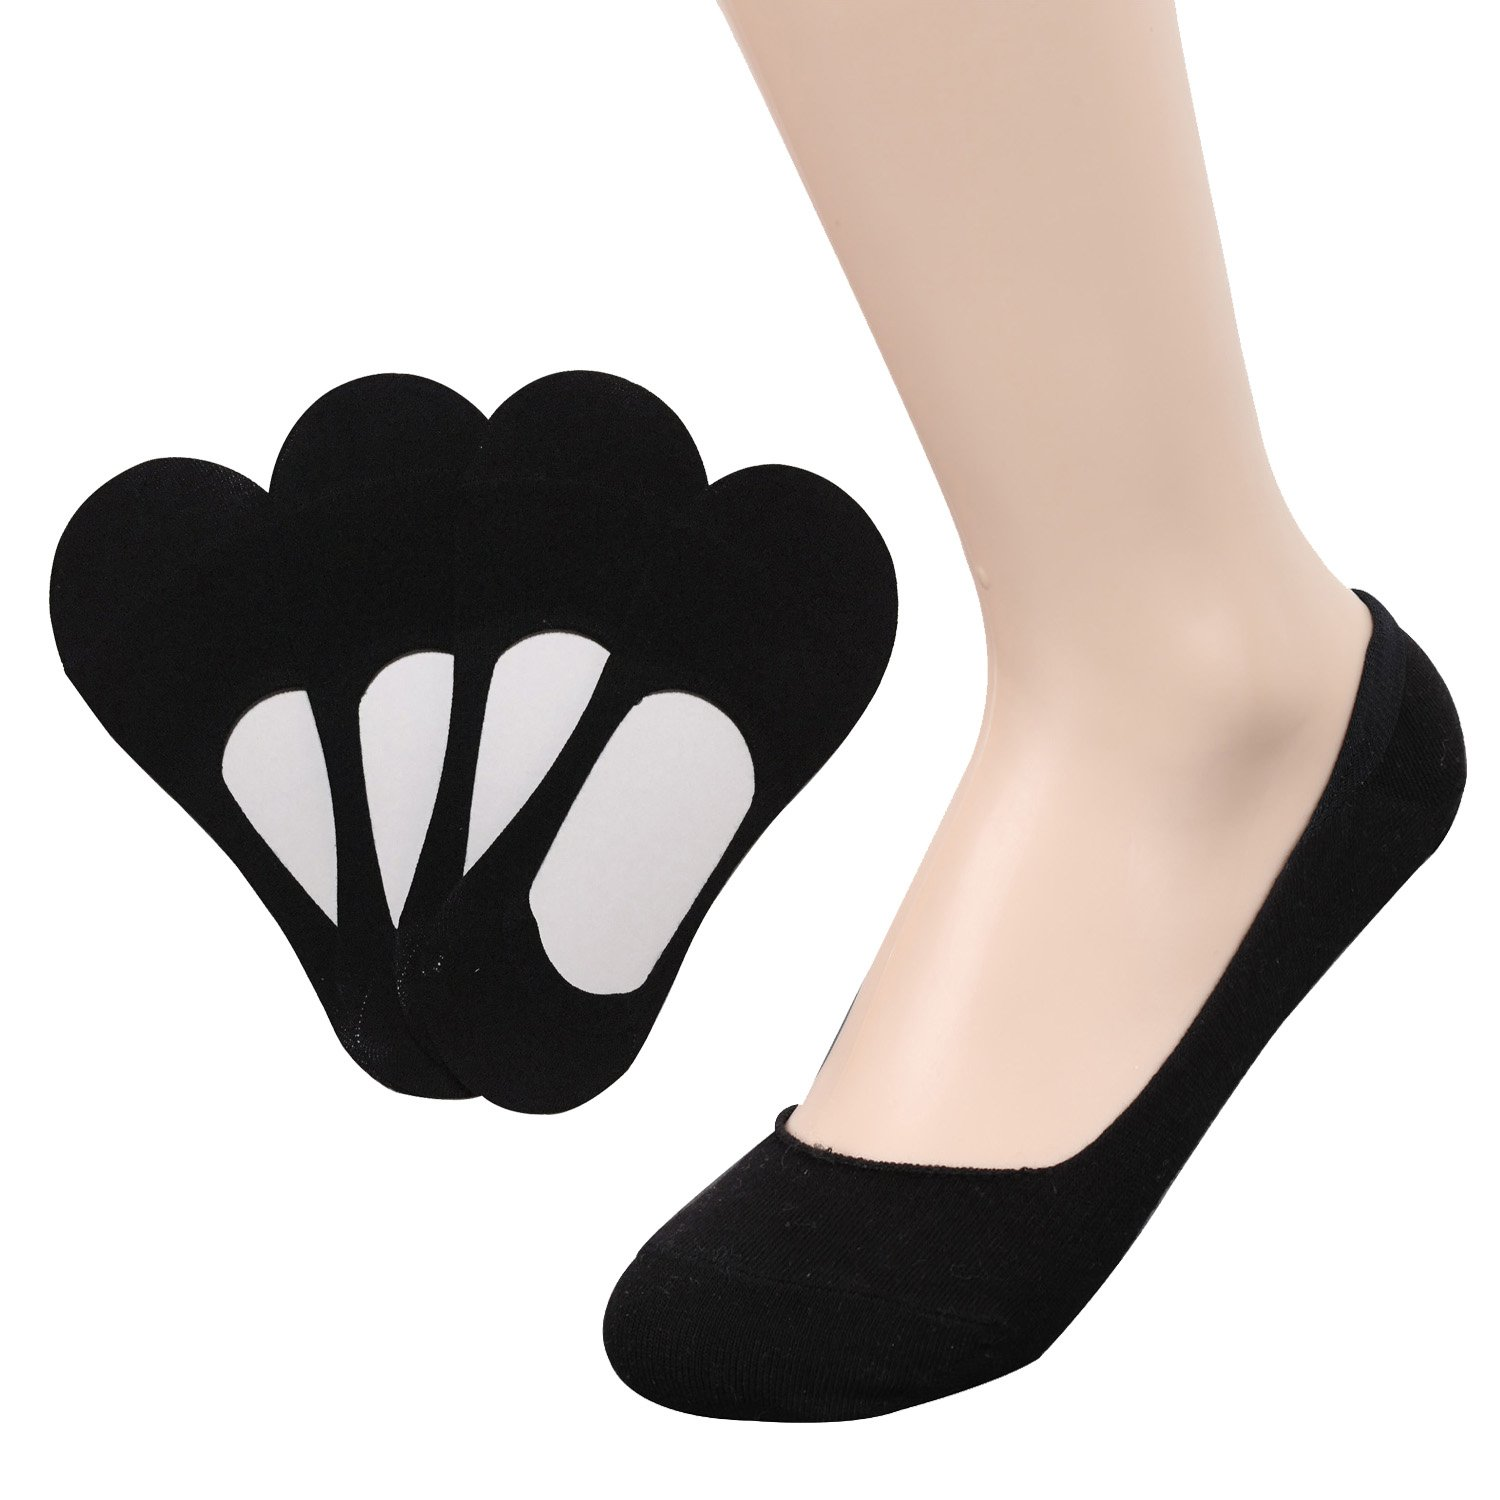 TETIBA Women's Premium Cotton No Show Liner Socks with Double Elastic band & Non slip Silicone Patch Pack of 4 Pairs (shoe 5-8, 4 Pack_black)